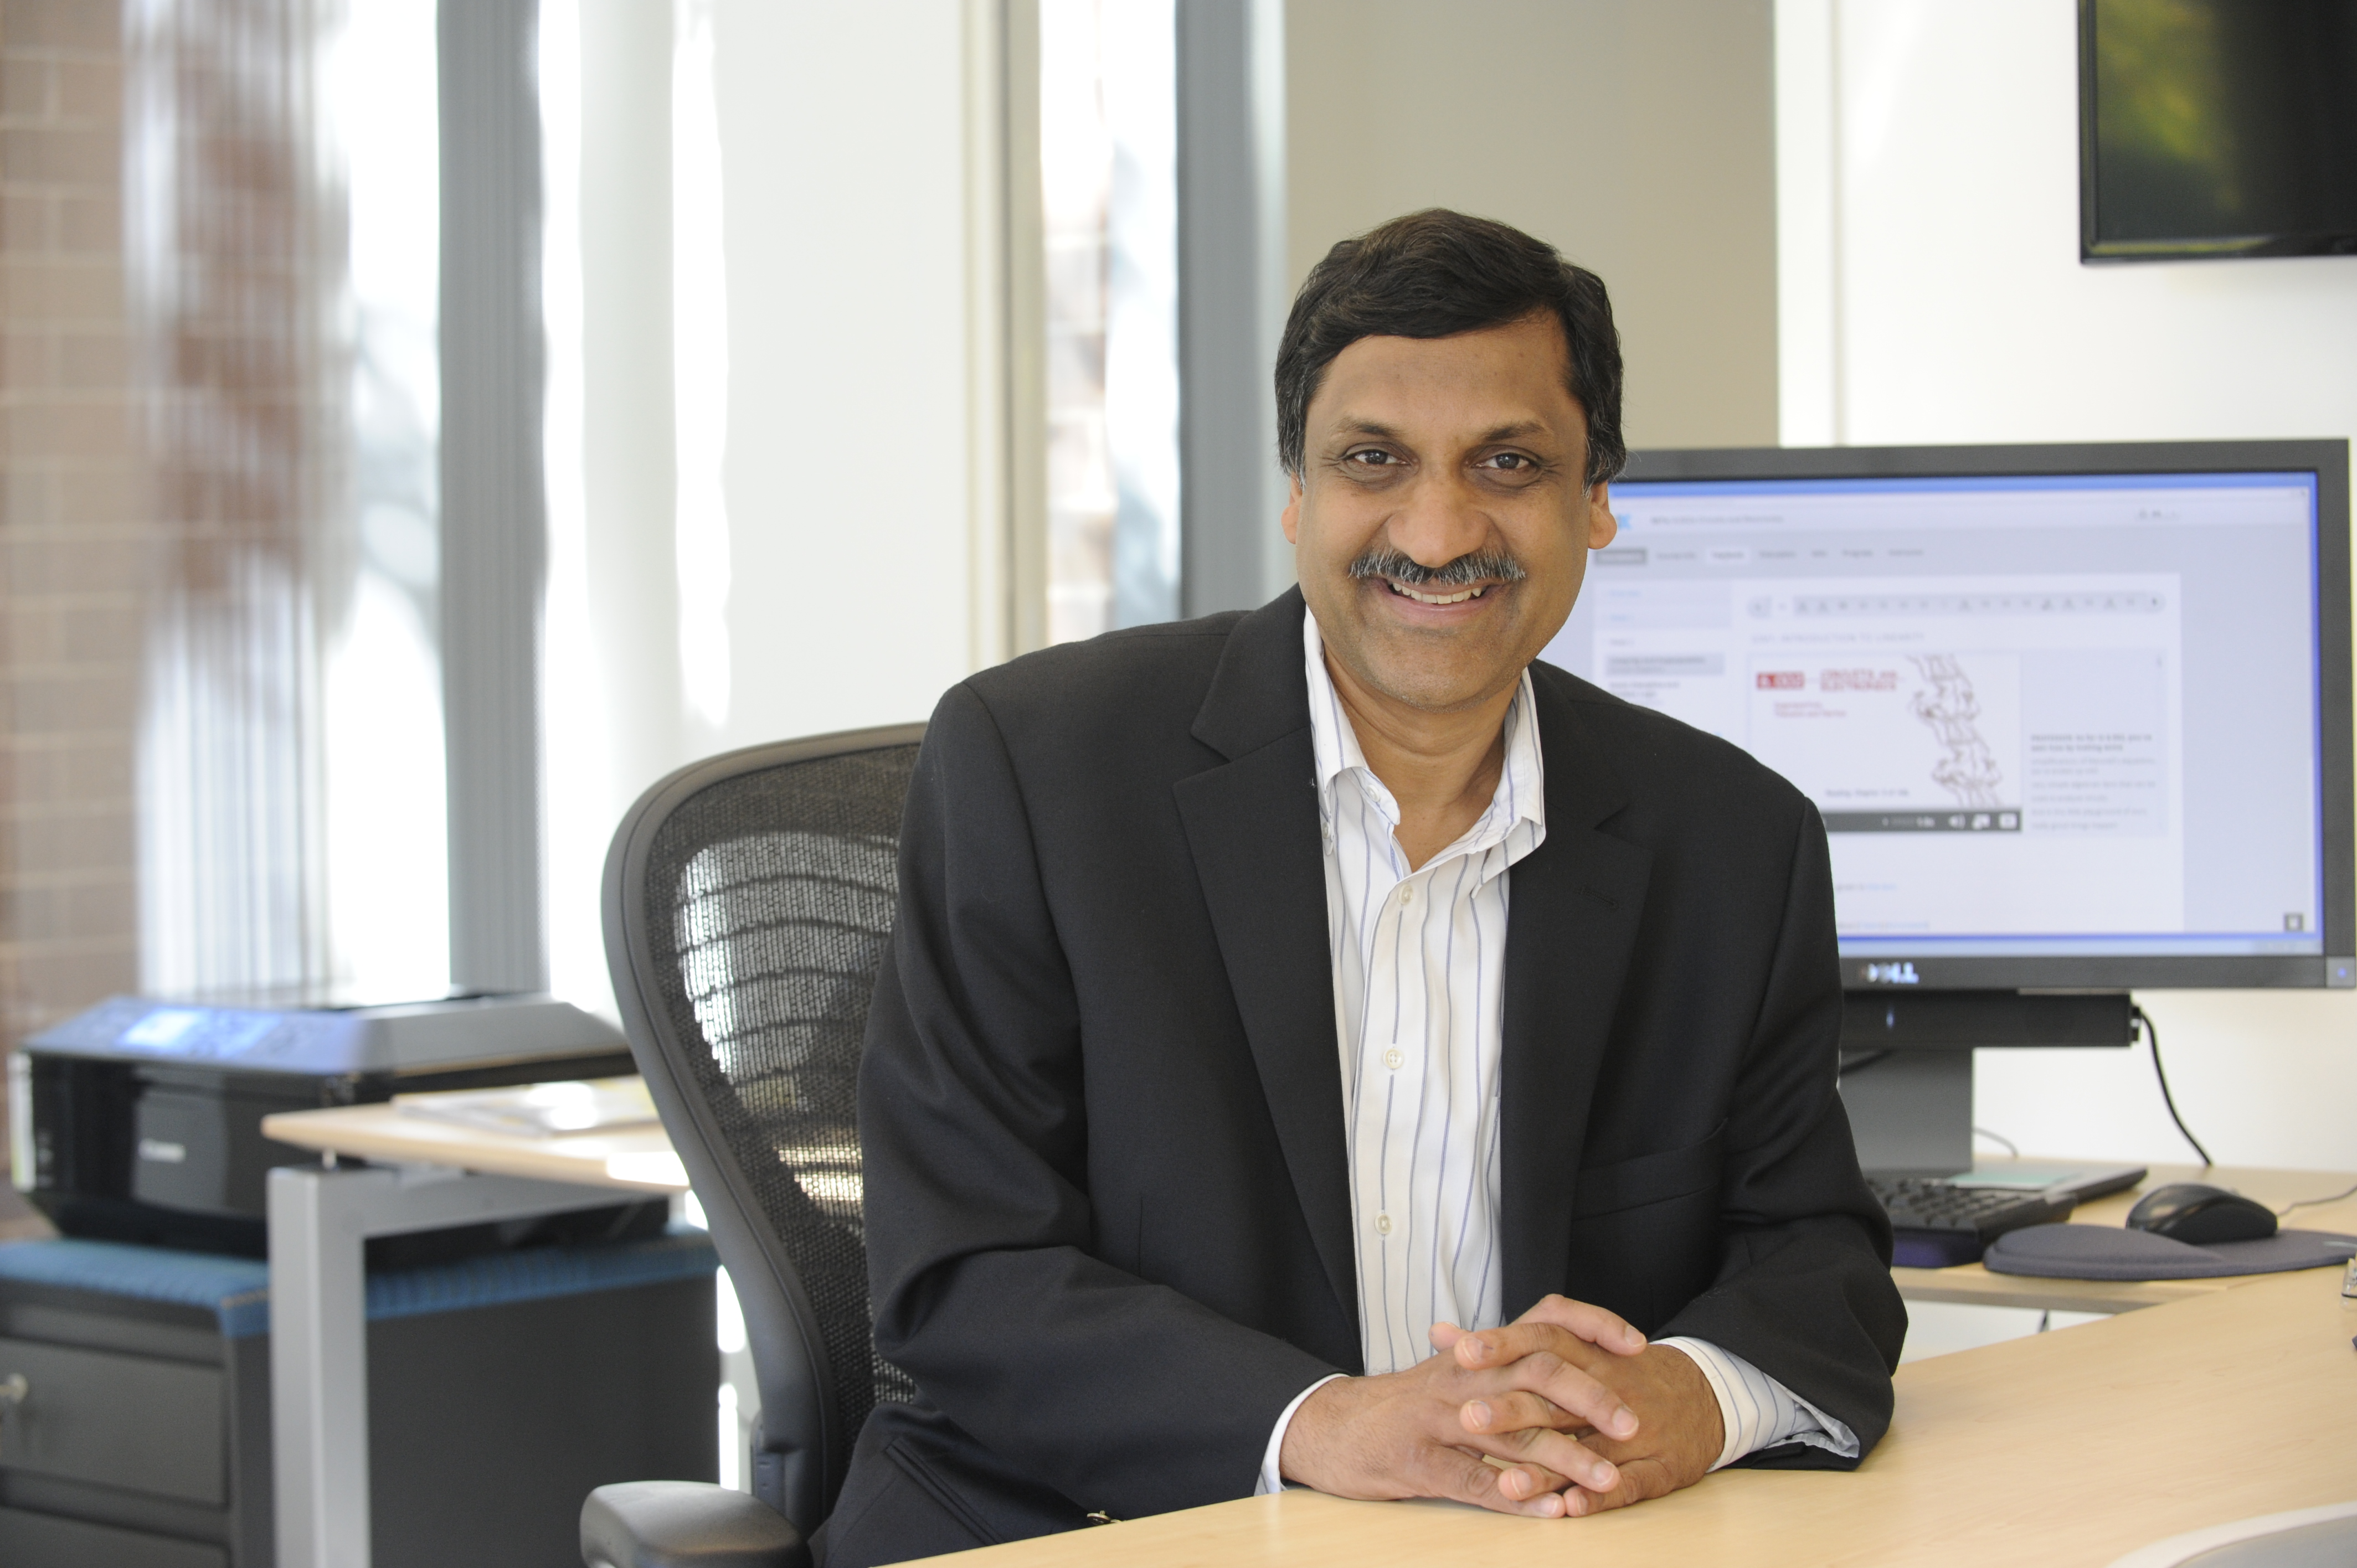 Anant Agarwal, edX CEO